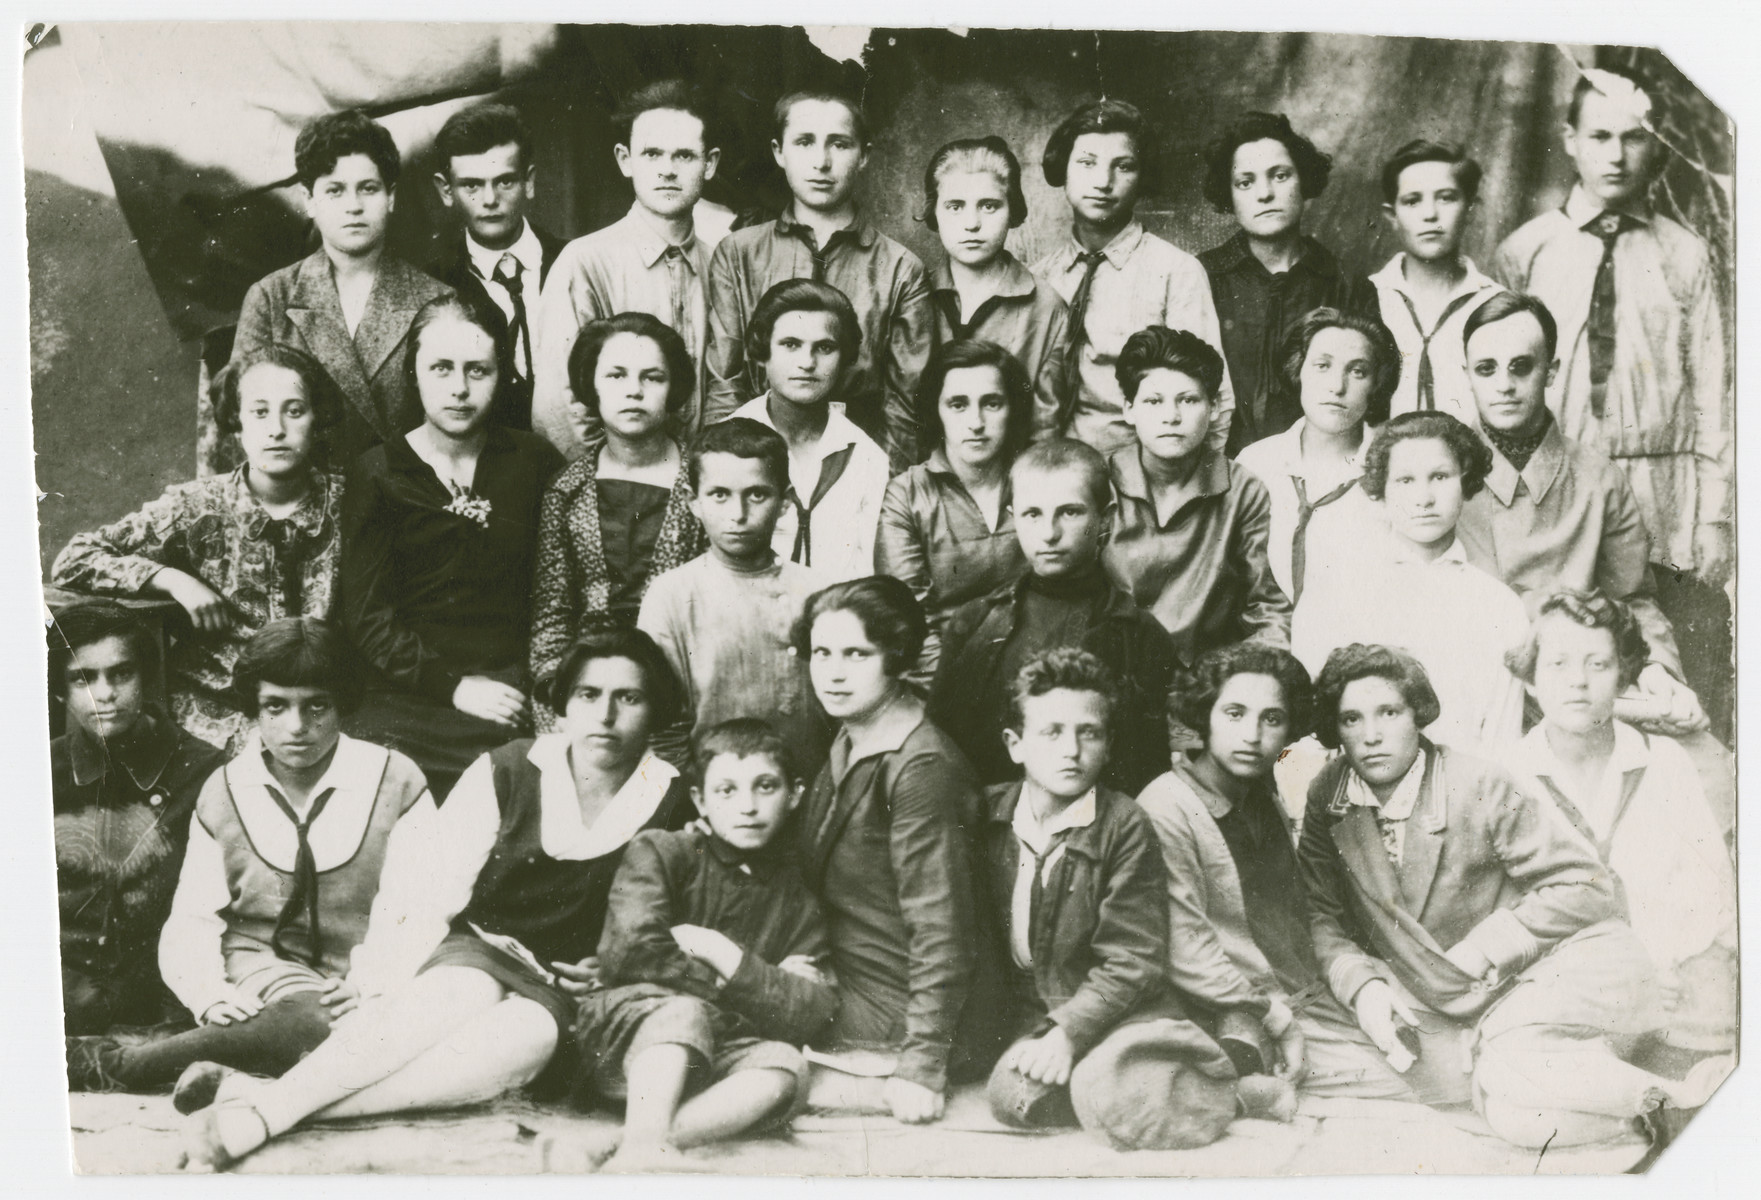 Group portrait of Jewish youth from Orinin, USSR.   Among the few of those pictured to survive the Holocaust were Perl Miller (3rd from right) and Leo Bernsteyn (4th from left).